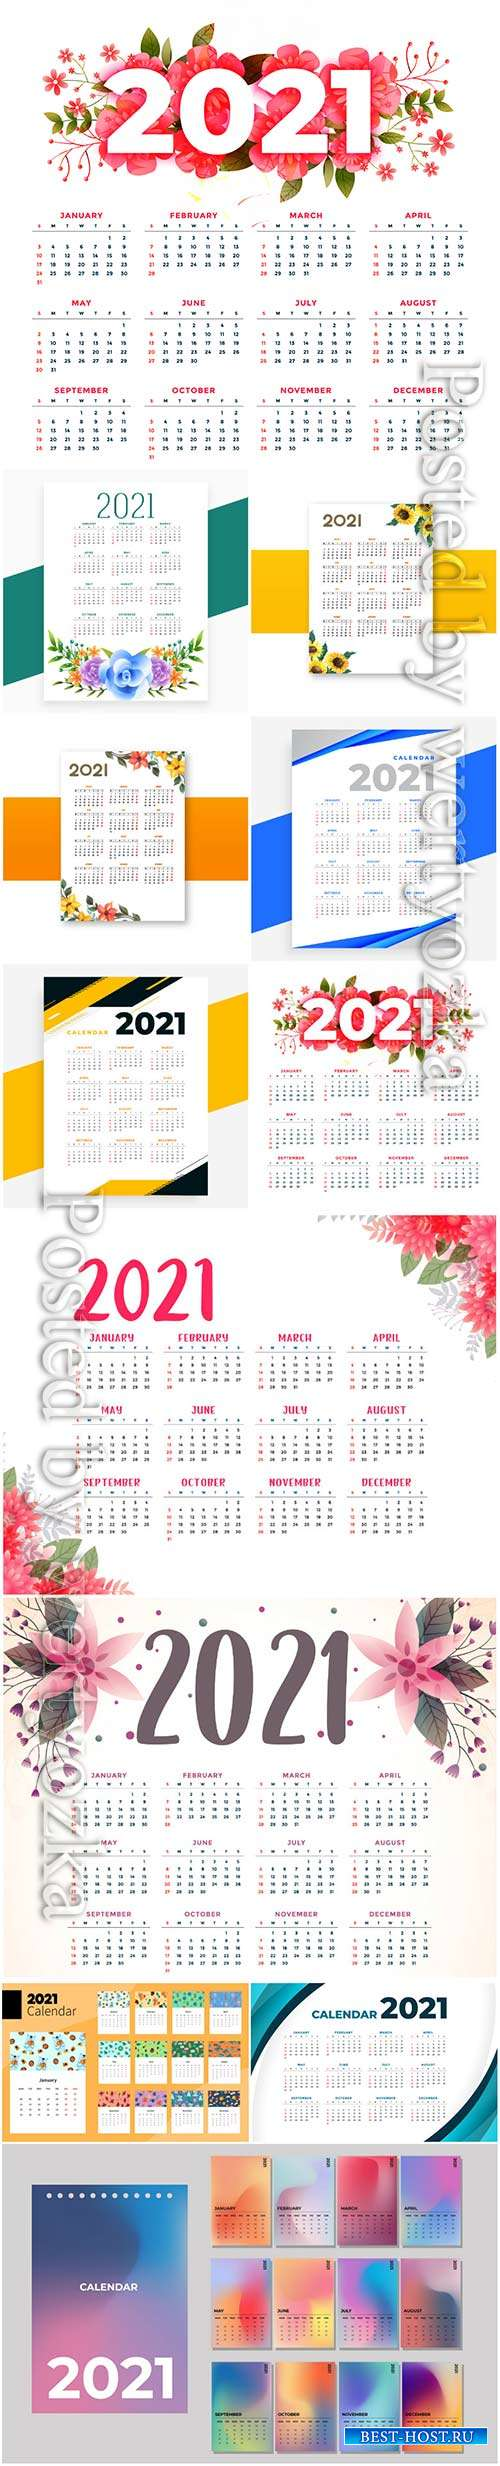 Flower style 2021 beautiful calendar template